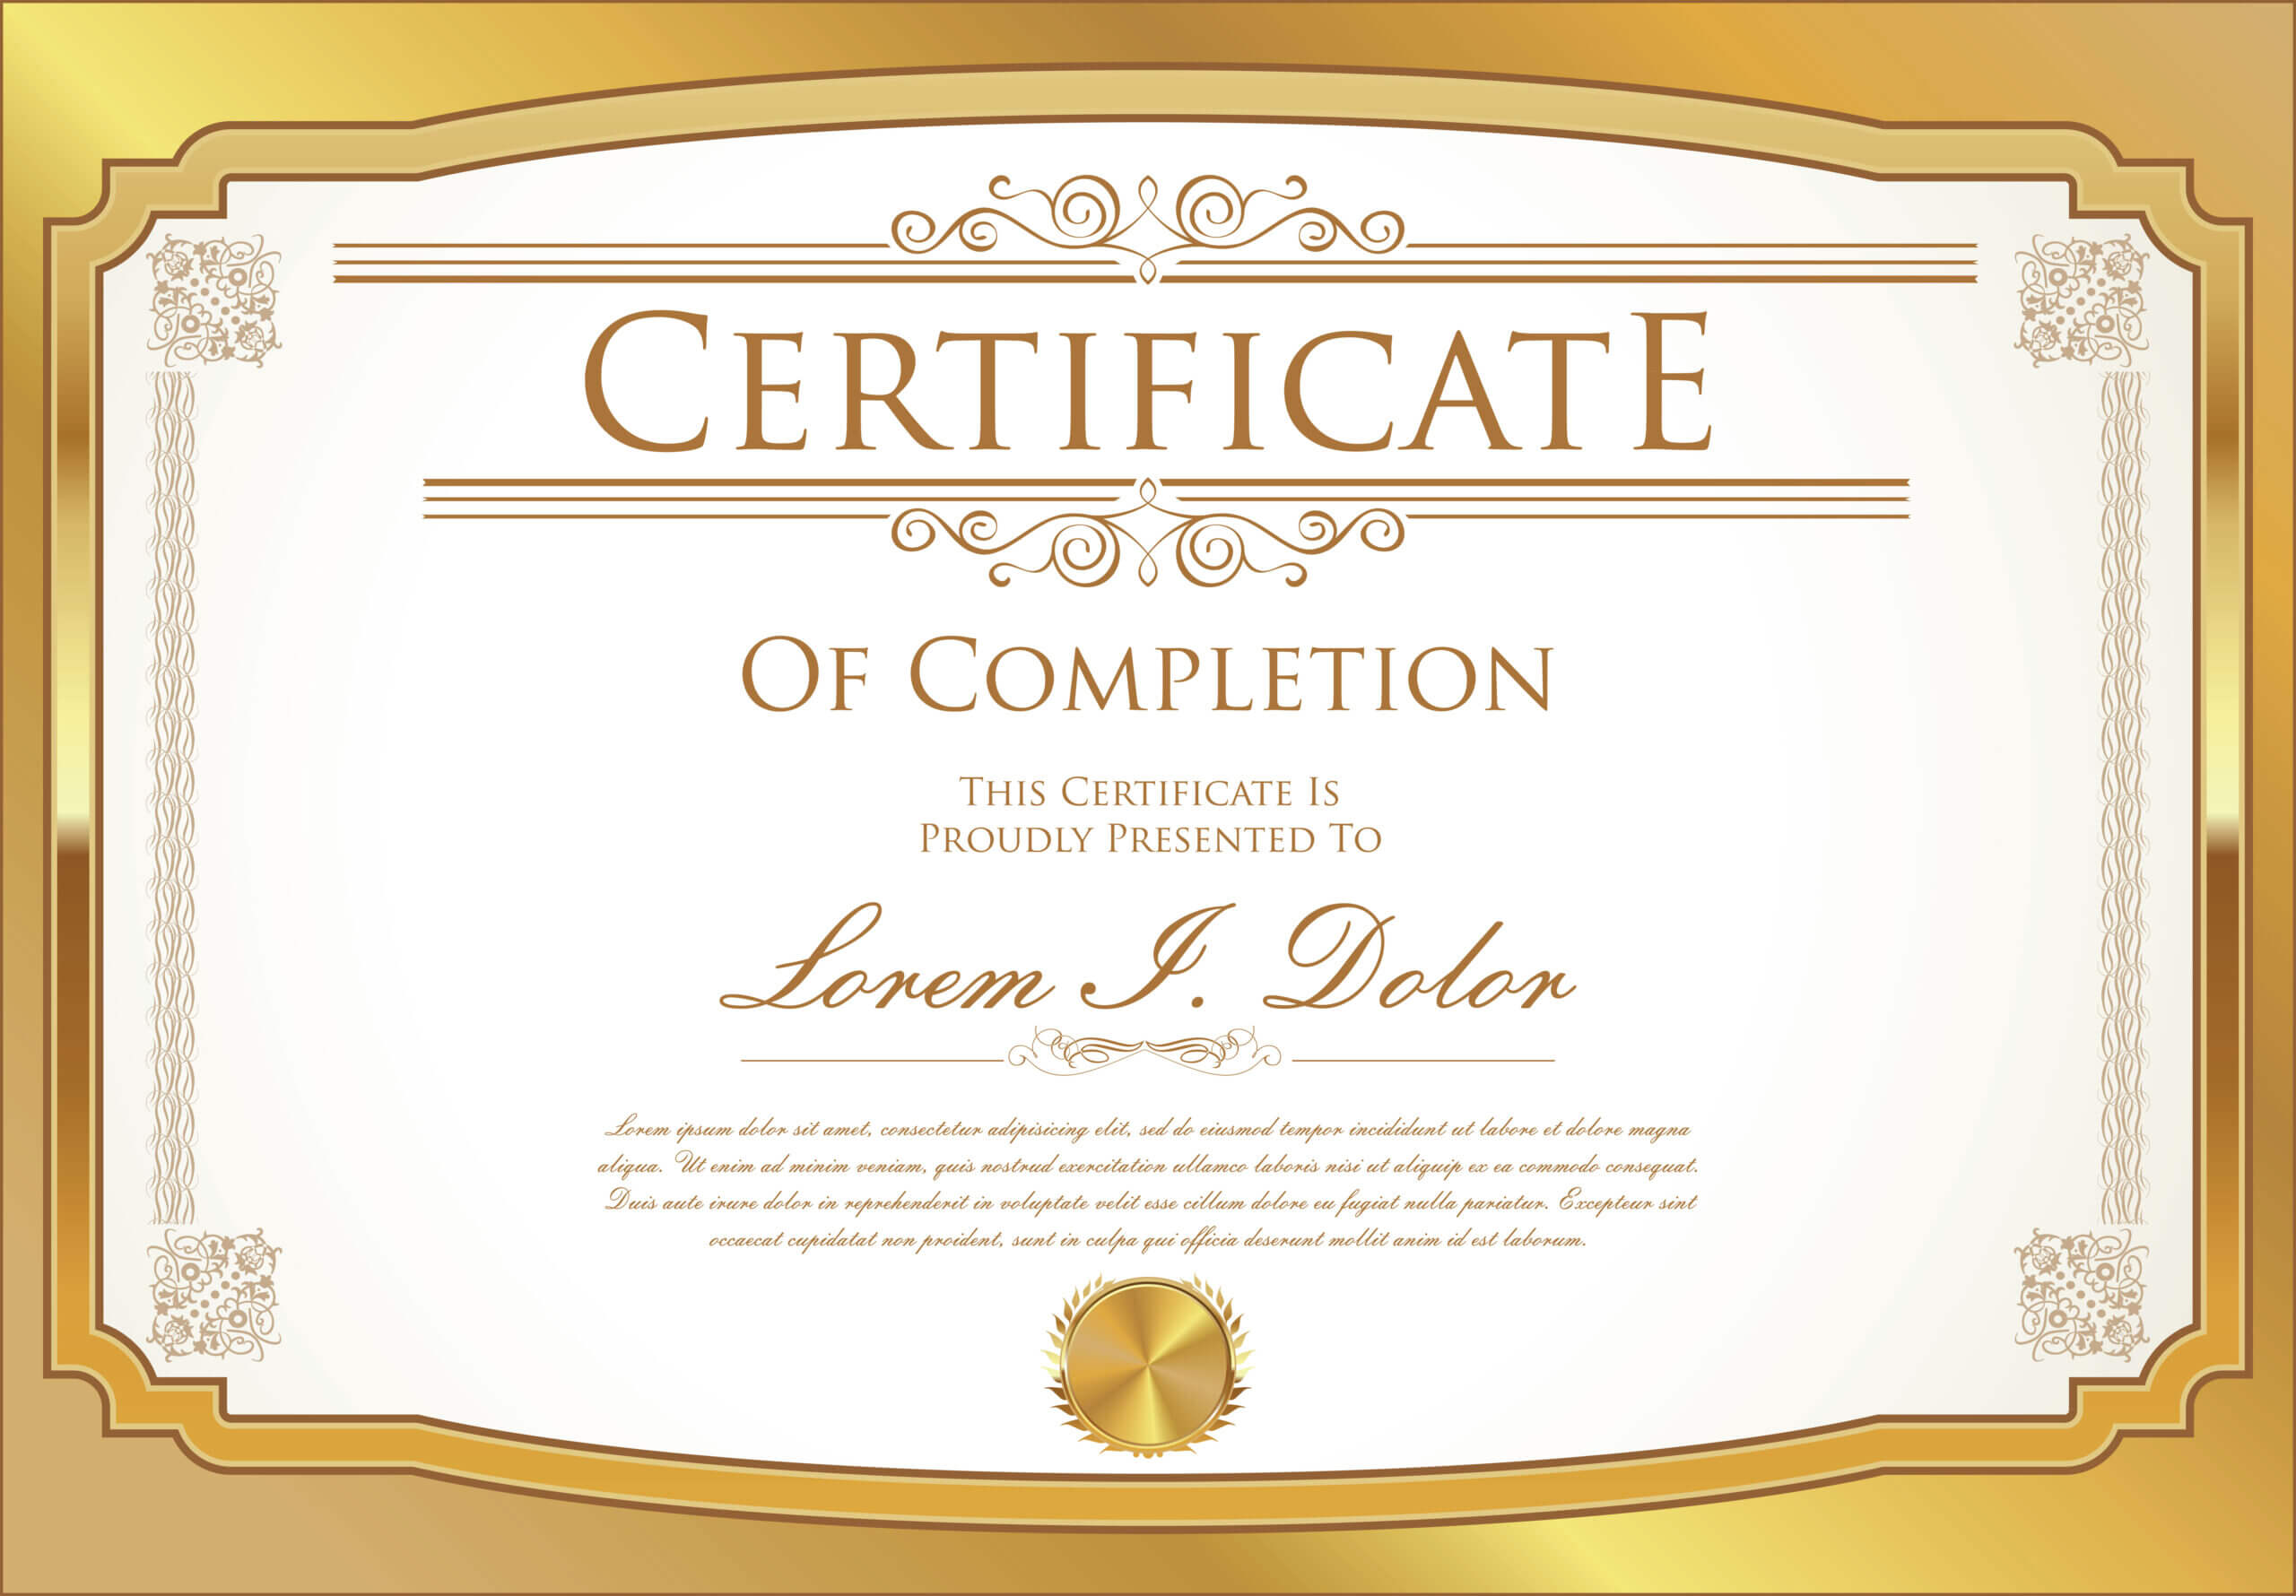 Certificate Template - Download Free Vectors, Clipart Intended For Commemorative Certificate Template